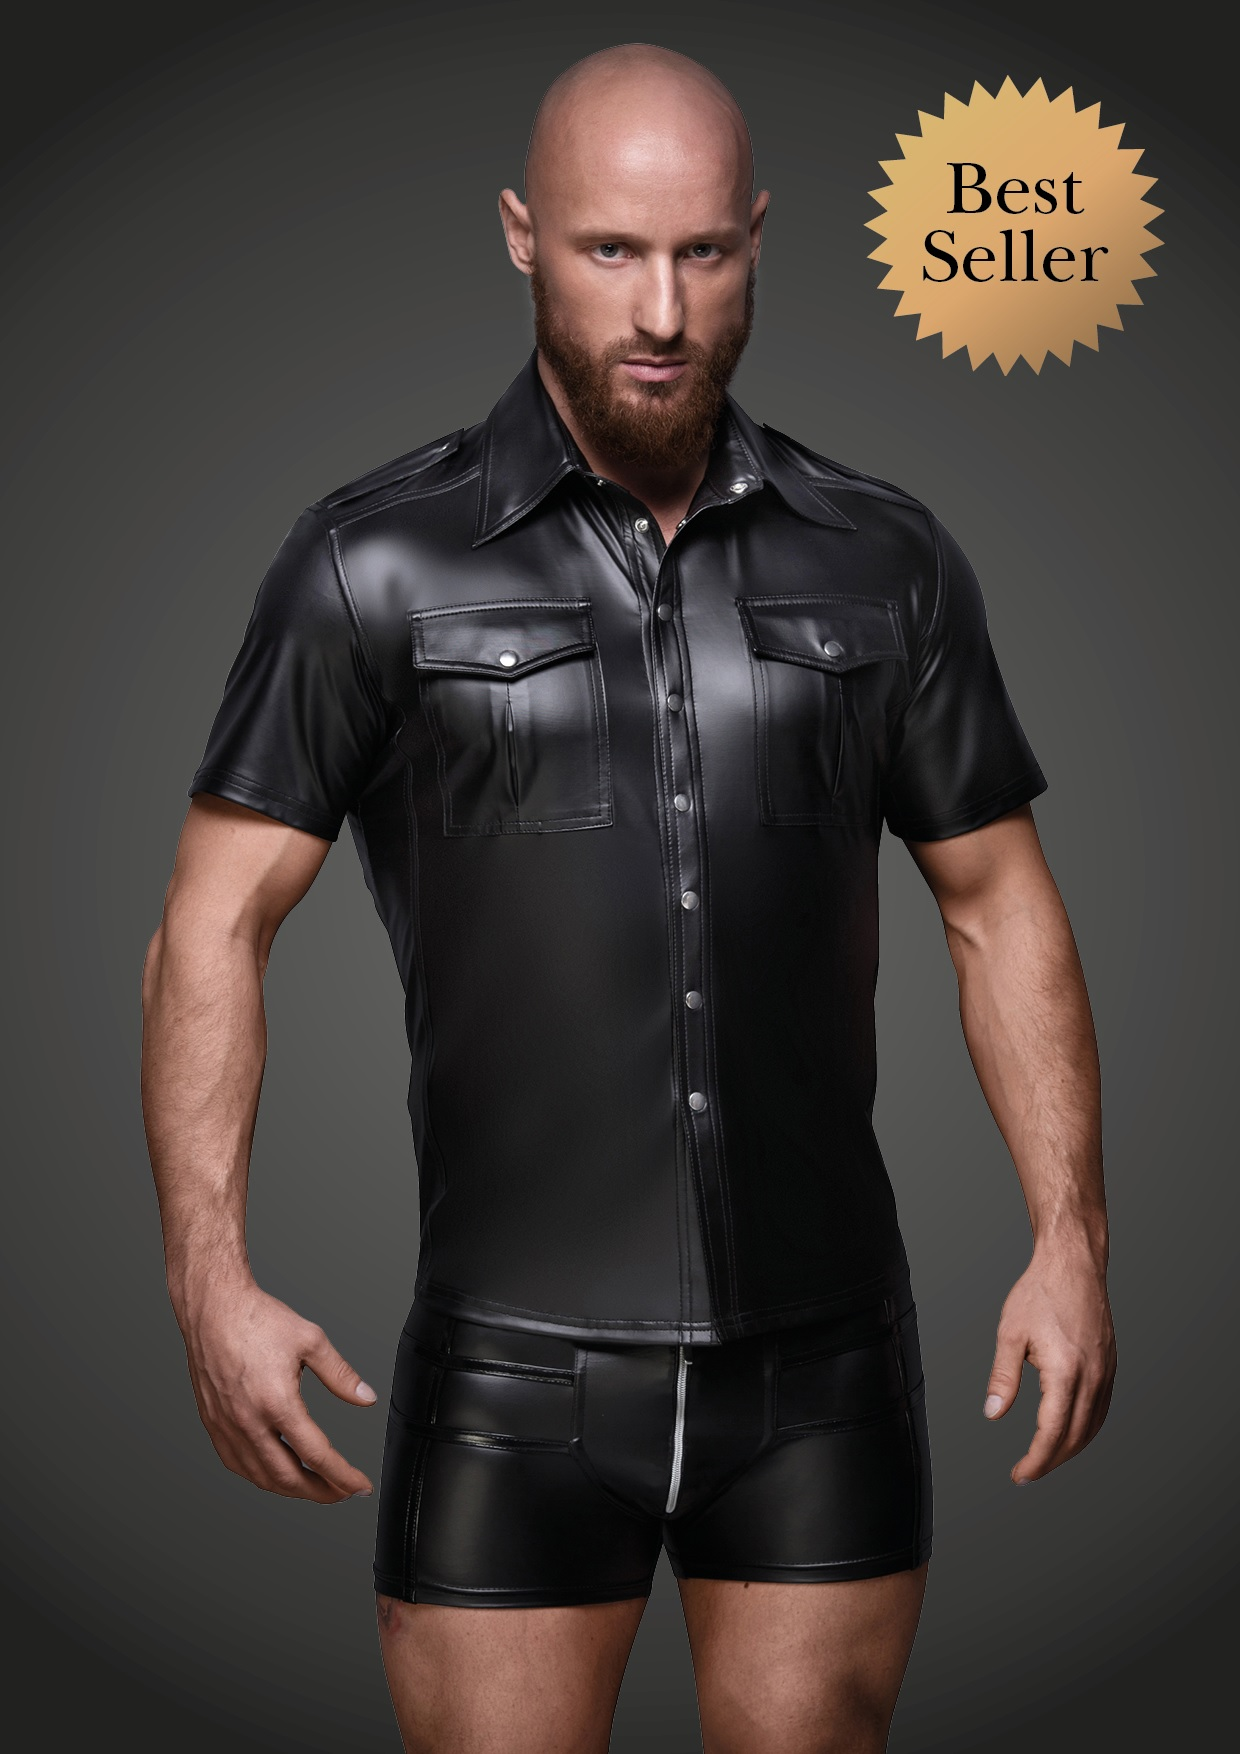 wetlook shirt man